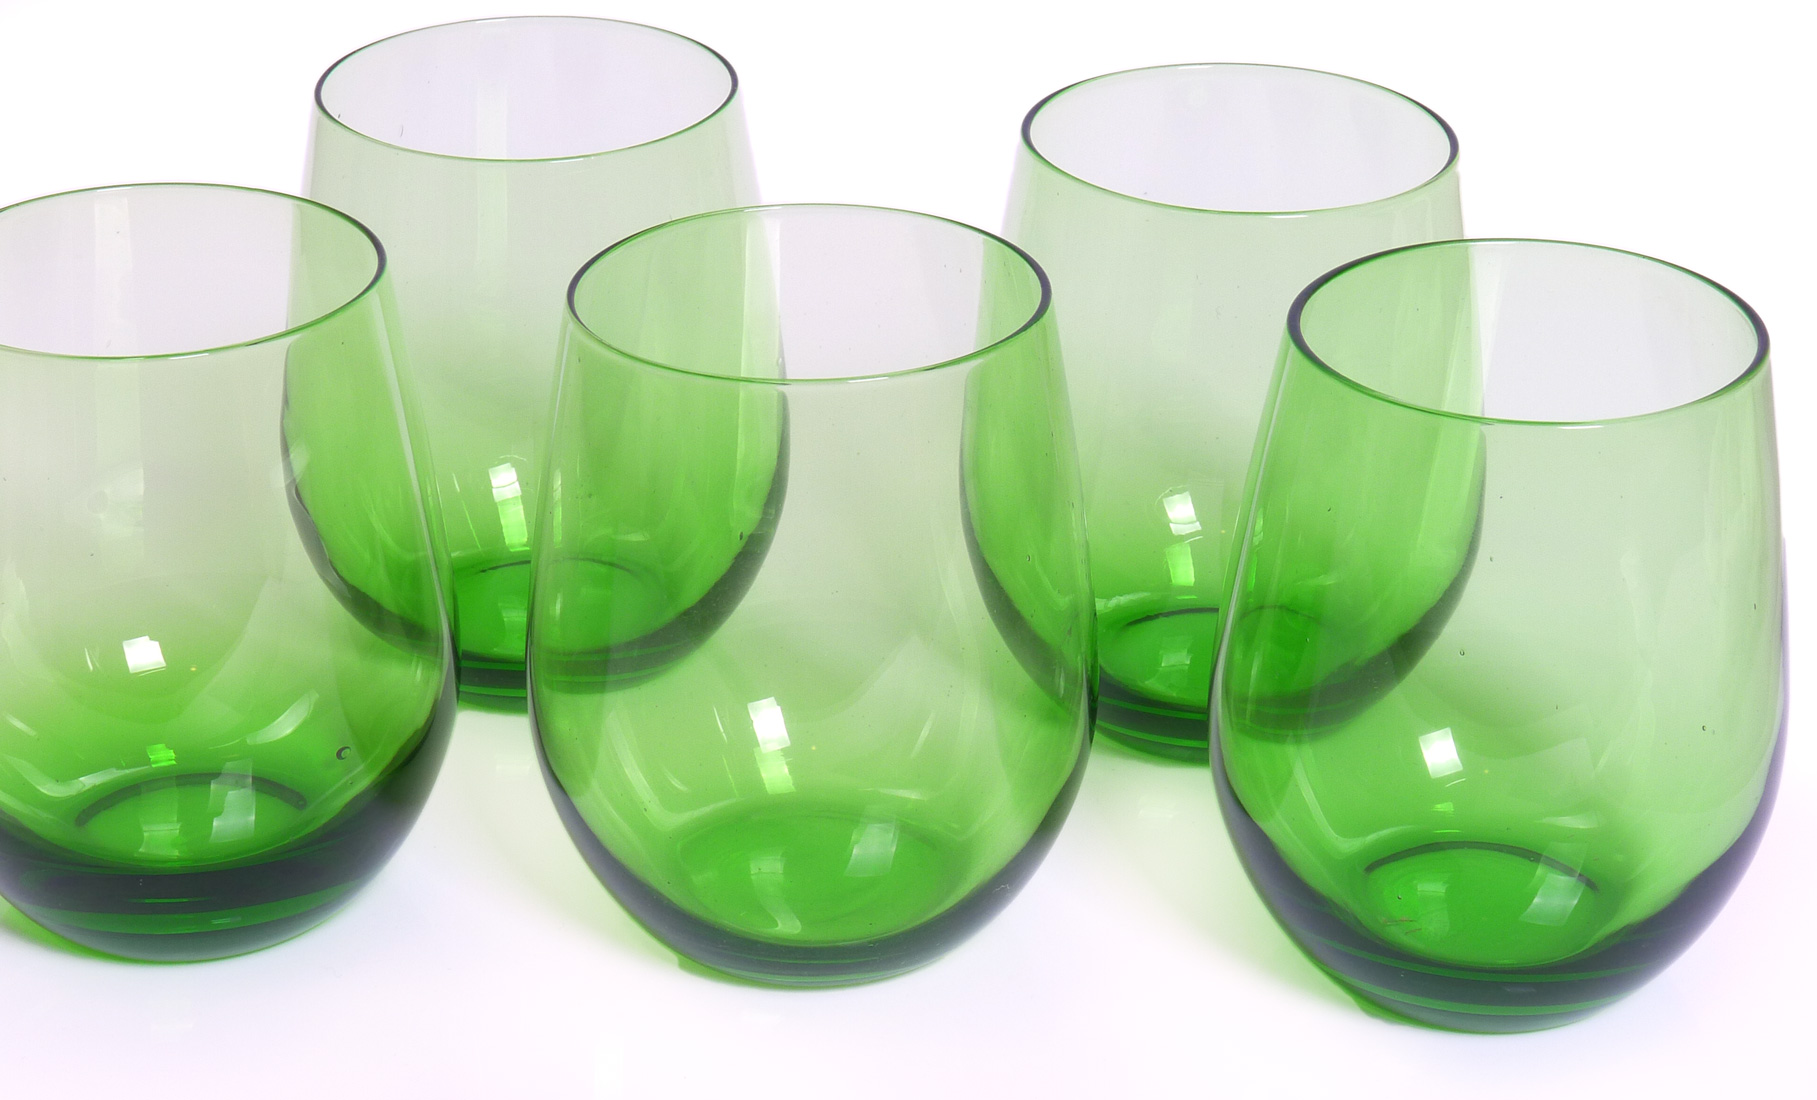 Image of Handcrafted Stemless Wine Glasses, 16-ounce, Green, Set of 6